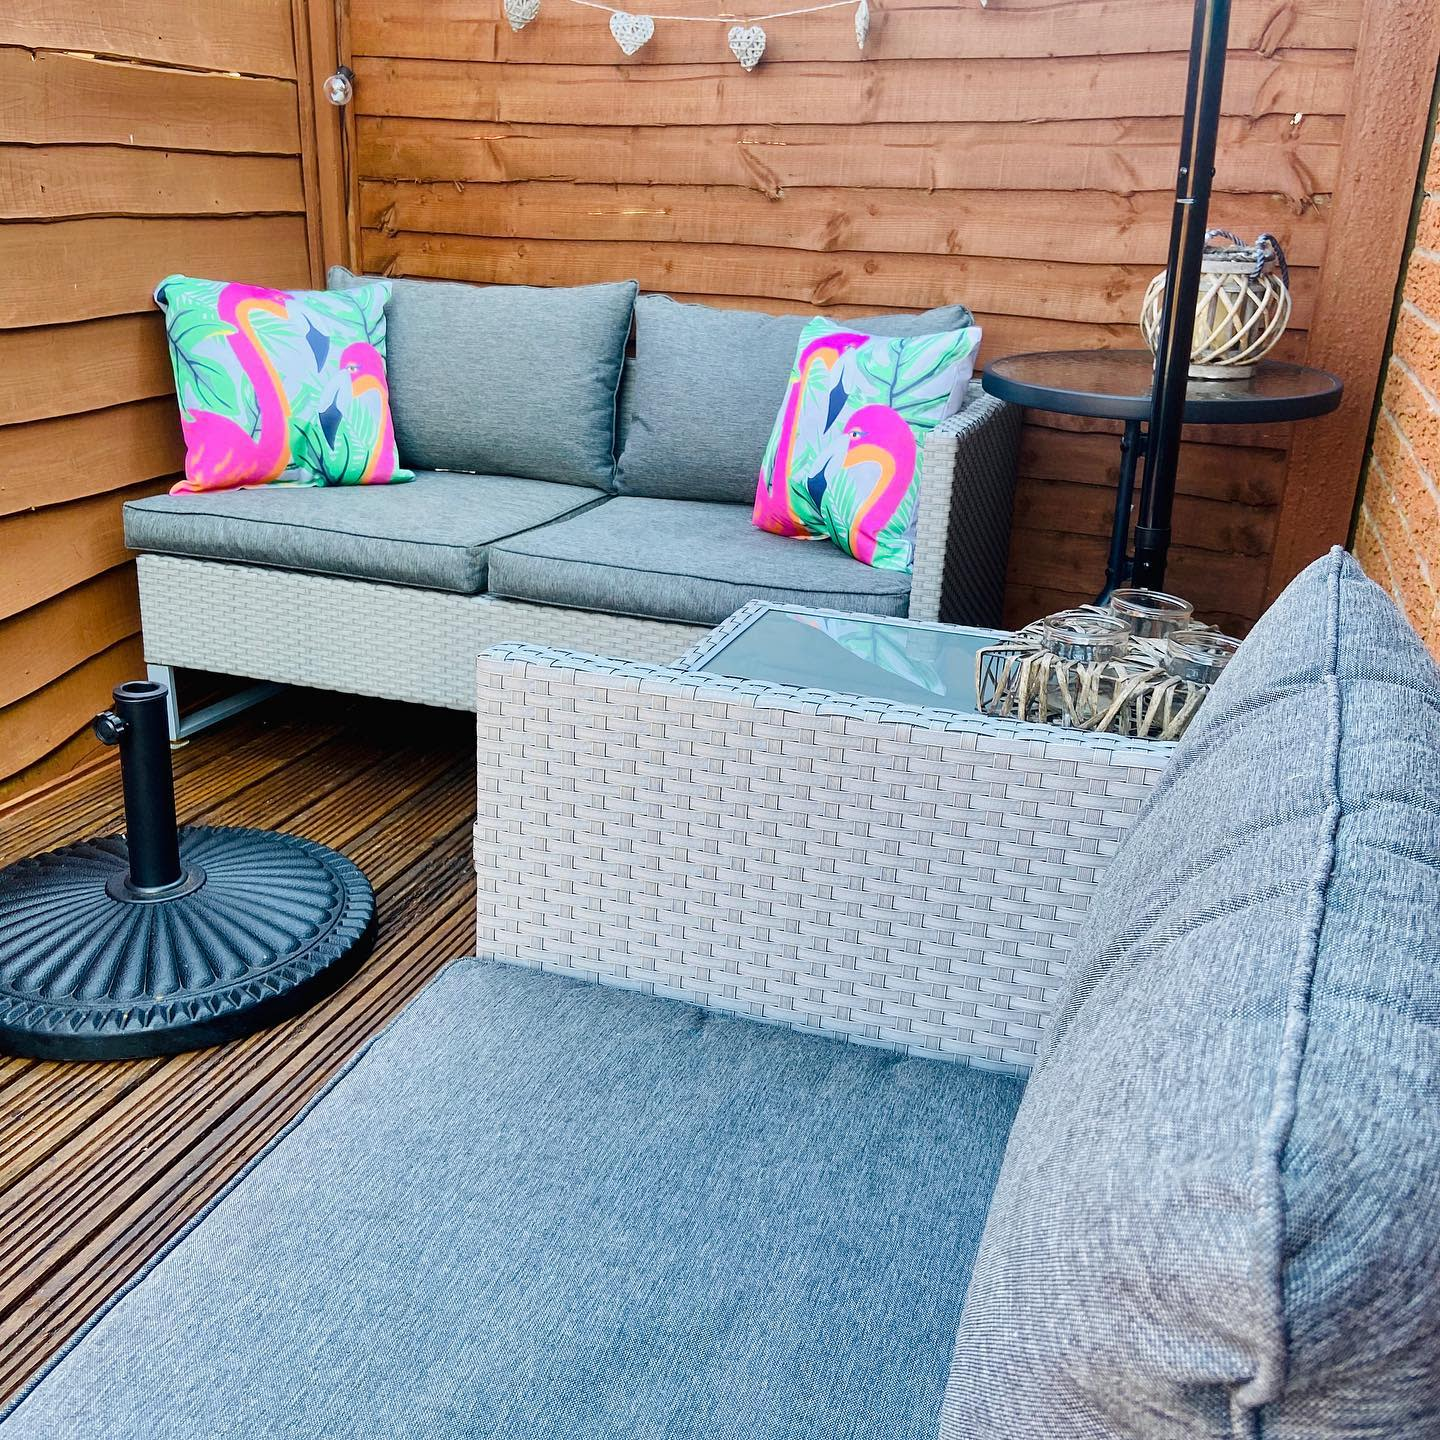 Couch Patio Furniture Ideas -our_cosylittlehouse